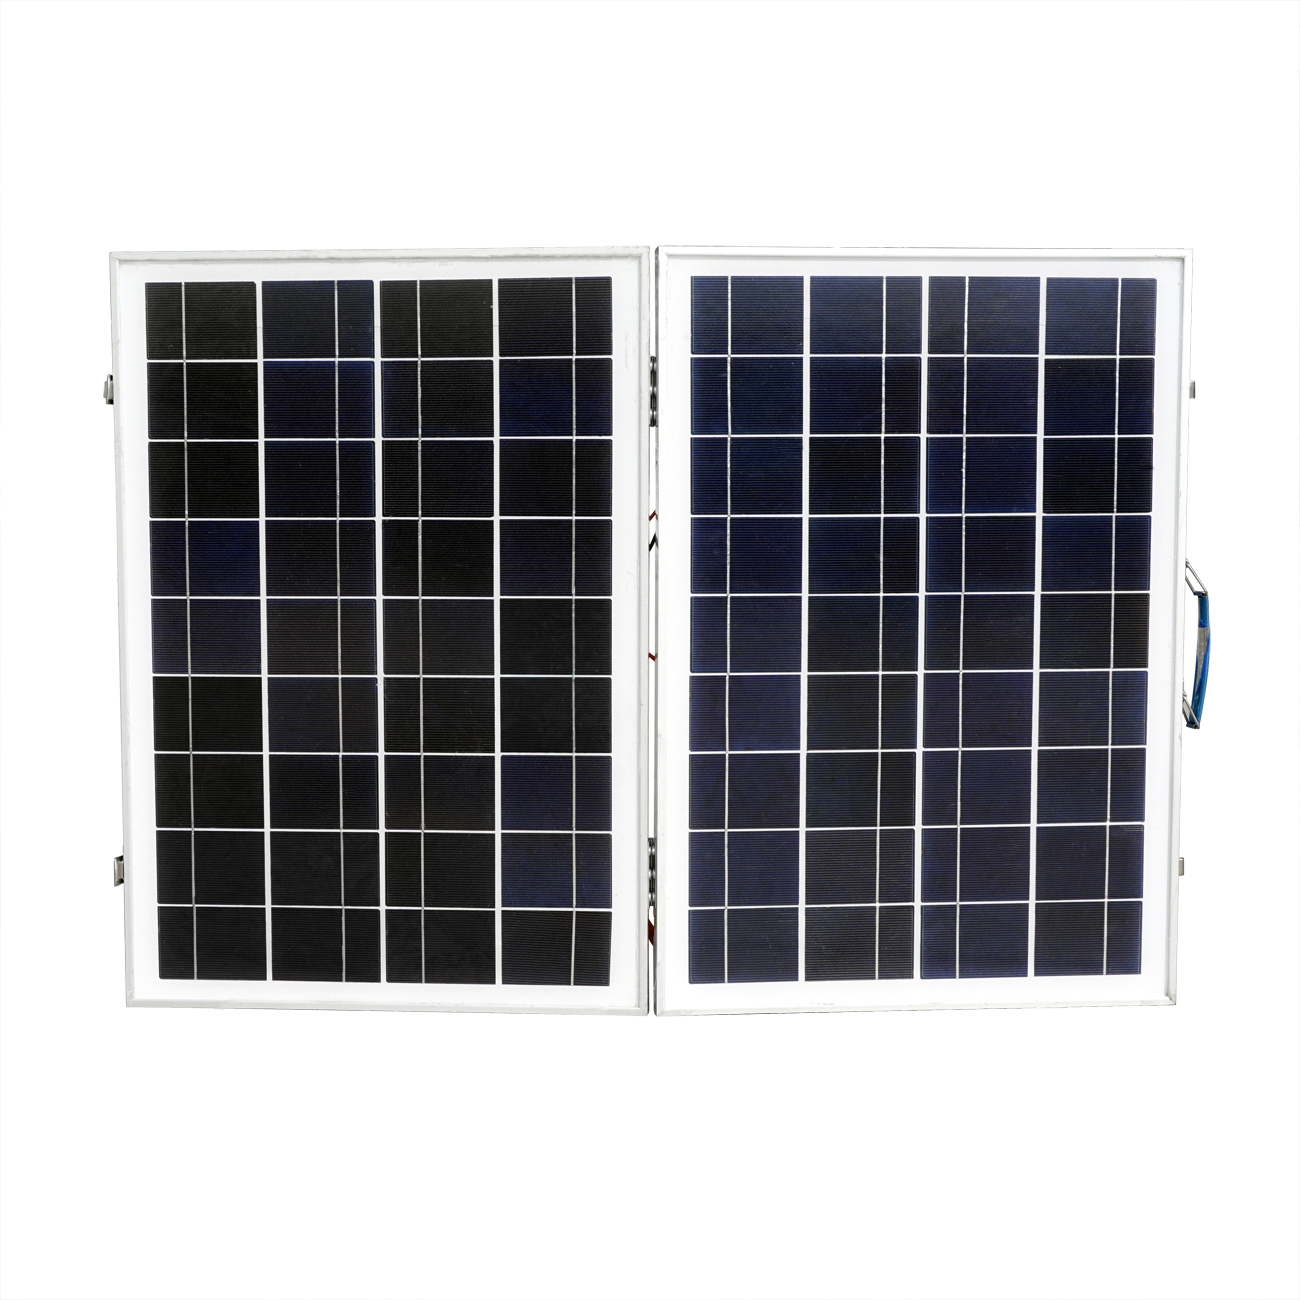 50W 18V Poly Folding Foldable Solar Panel for 12v Battery Car RV Camping Boat Solar Generators 2pcs 4pcs mono 20v 100w flexible solar panel modules for fishing boat car rv 12v battery solar charger 36 solar cells 100w